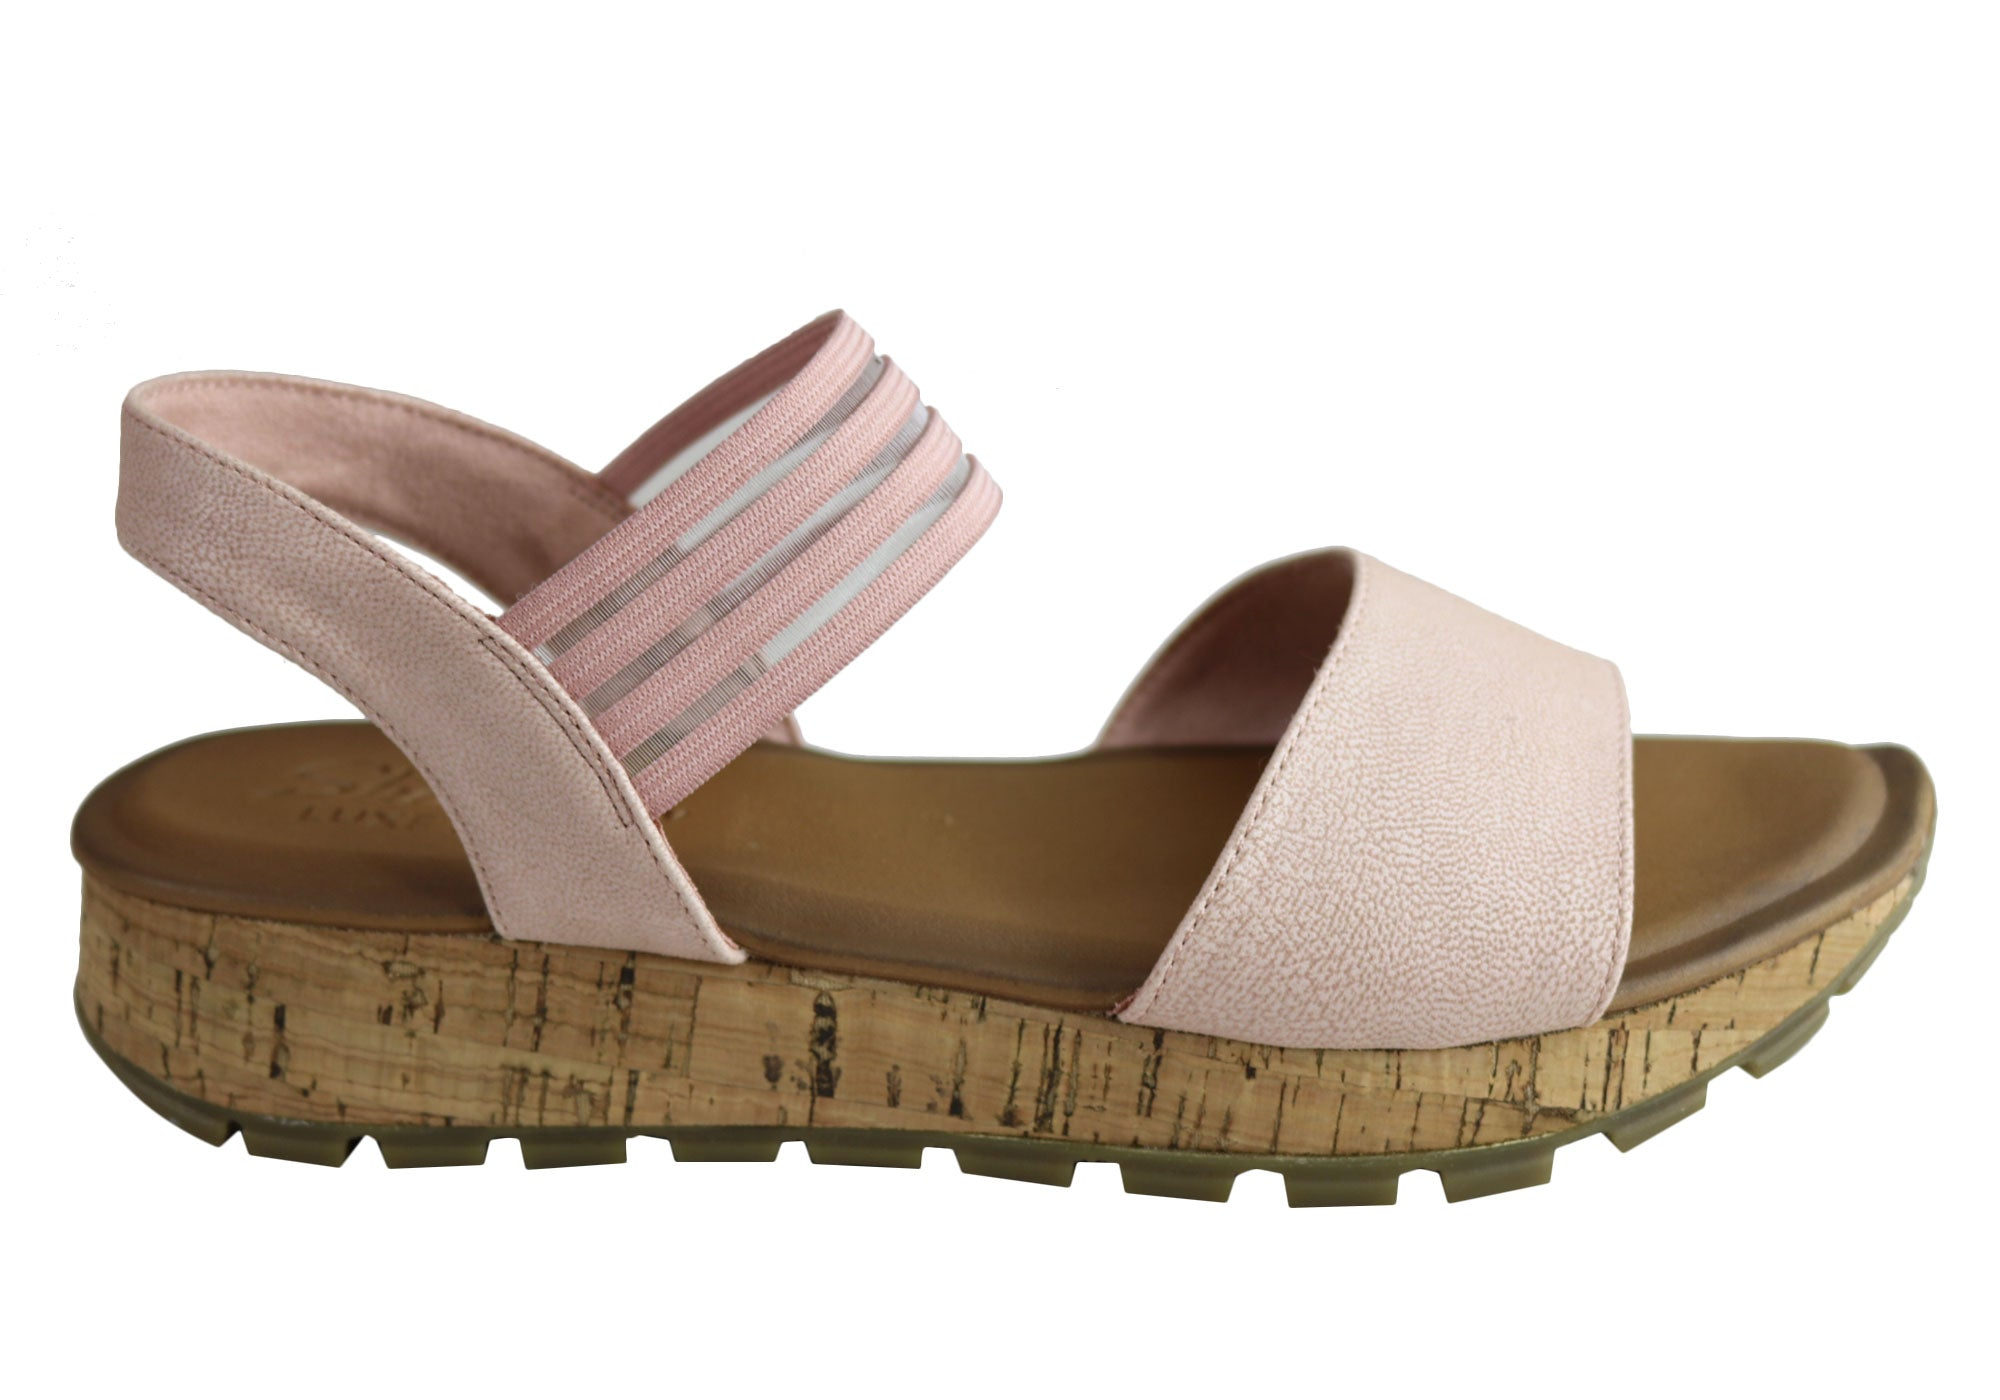 NEW SKECHERS Donna FOOTBED FOOTSTEPS MARKERS LUXE FOAM FOOTBED Donna COMFORT SANDALS 427f31